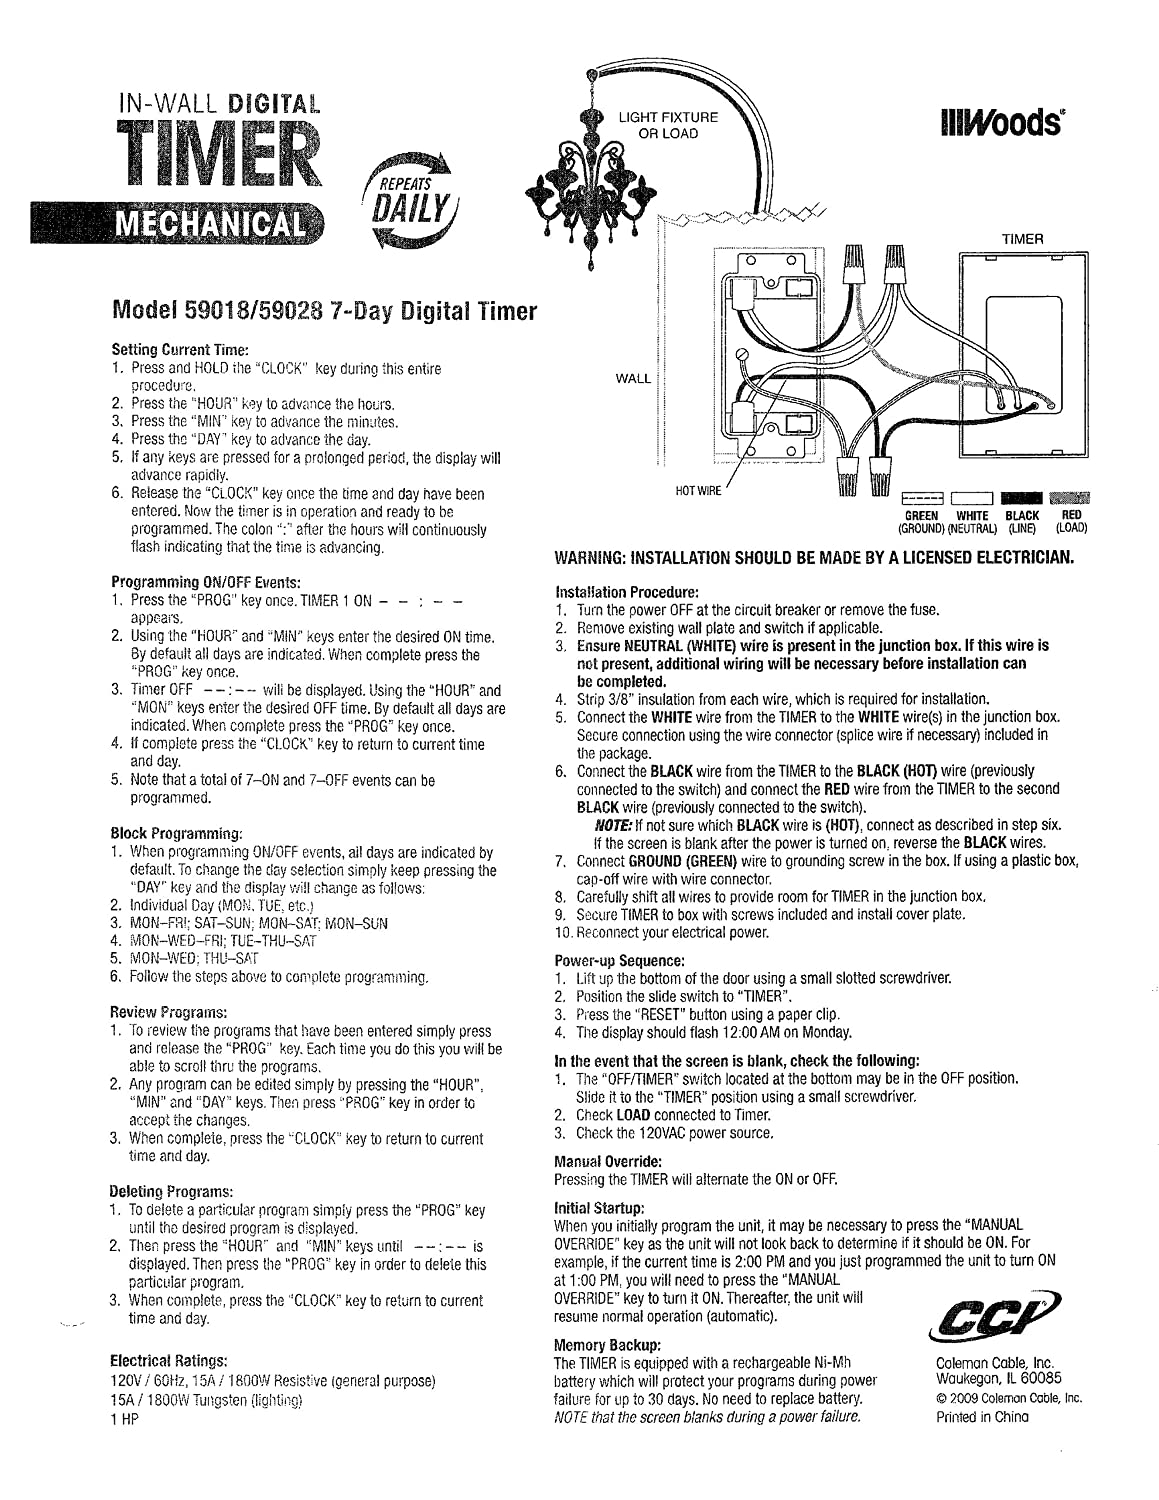 In Wall Timer Wiring Diagram Free For You Omron Relay Honeywell Rpls530a 33 Electrical